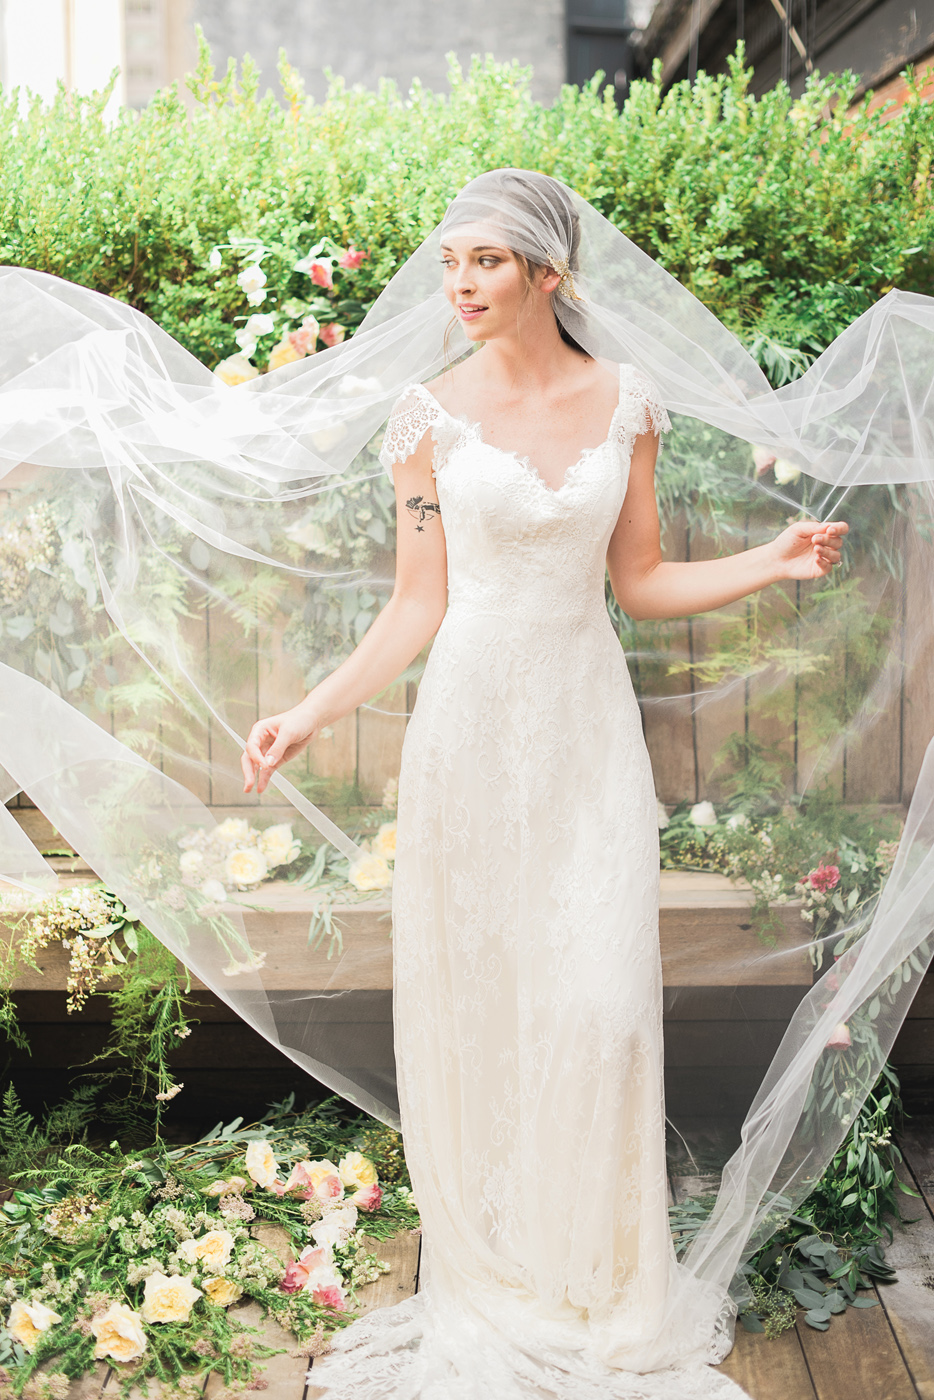 juliet cap tulle veil with gold vine flower crystal detail lace gown hushed commotion